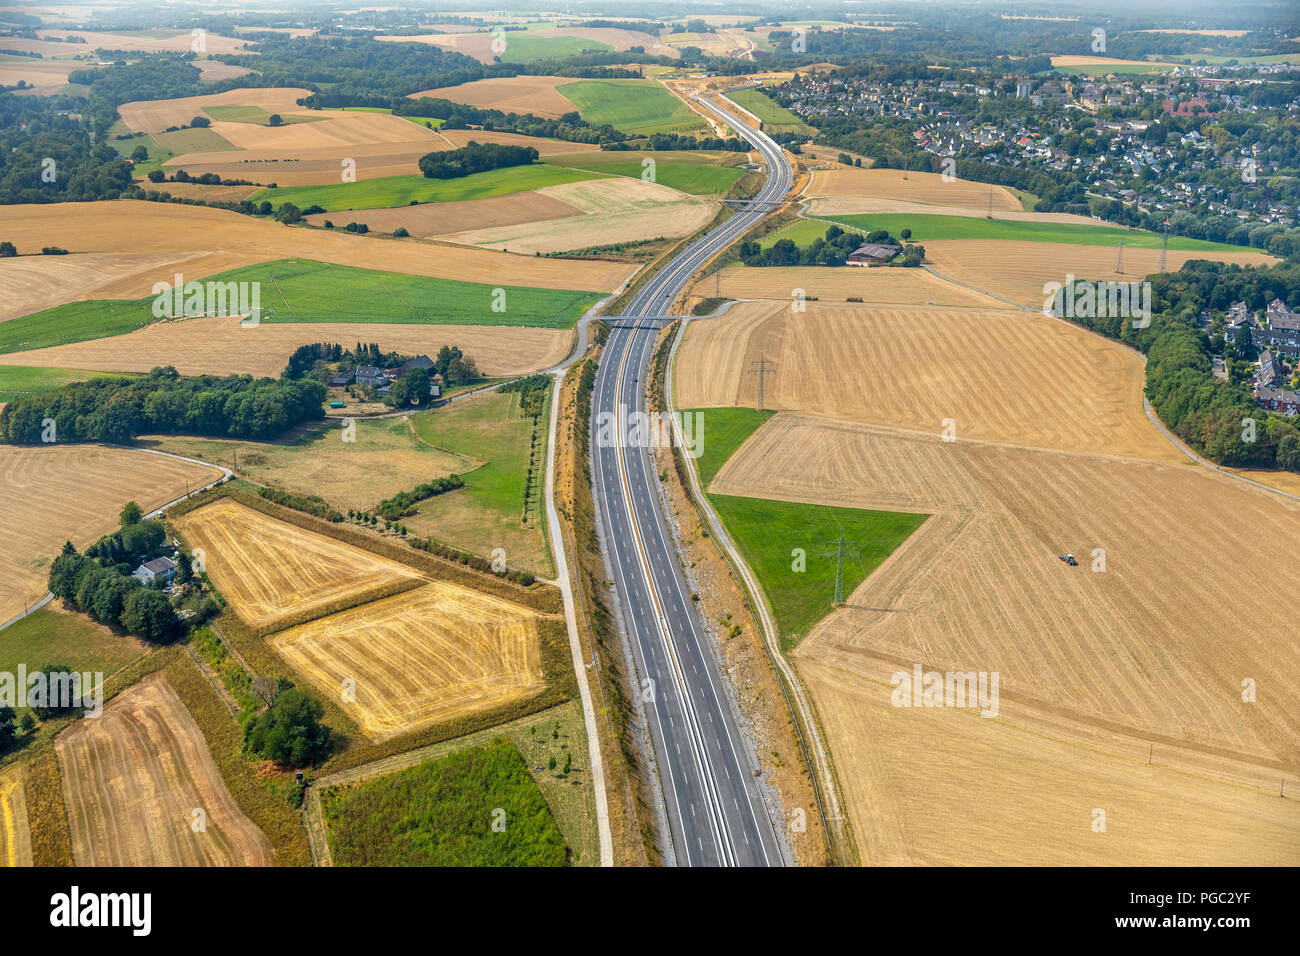 Bare fields, early harvest by drought and dryness next to the highway A44, Hetterscheidt, Holy House, Ruhr Area, Nordrhein-Westfalen, Germany, DEU, Eu Stock Photo